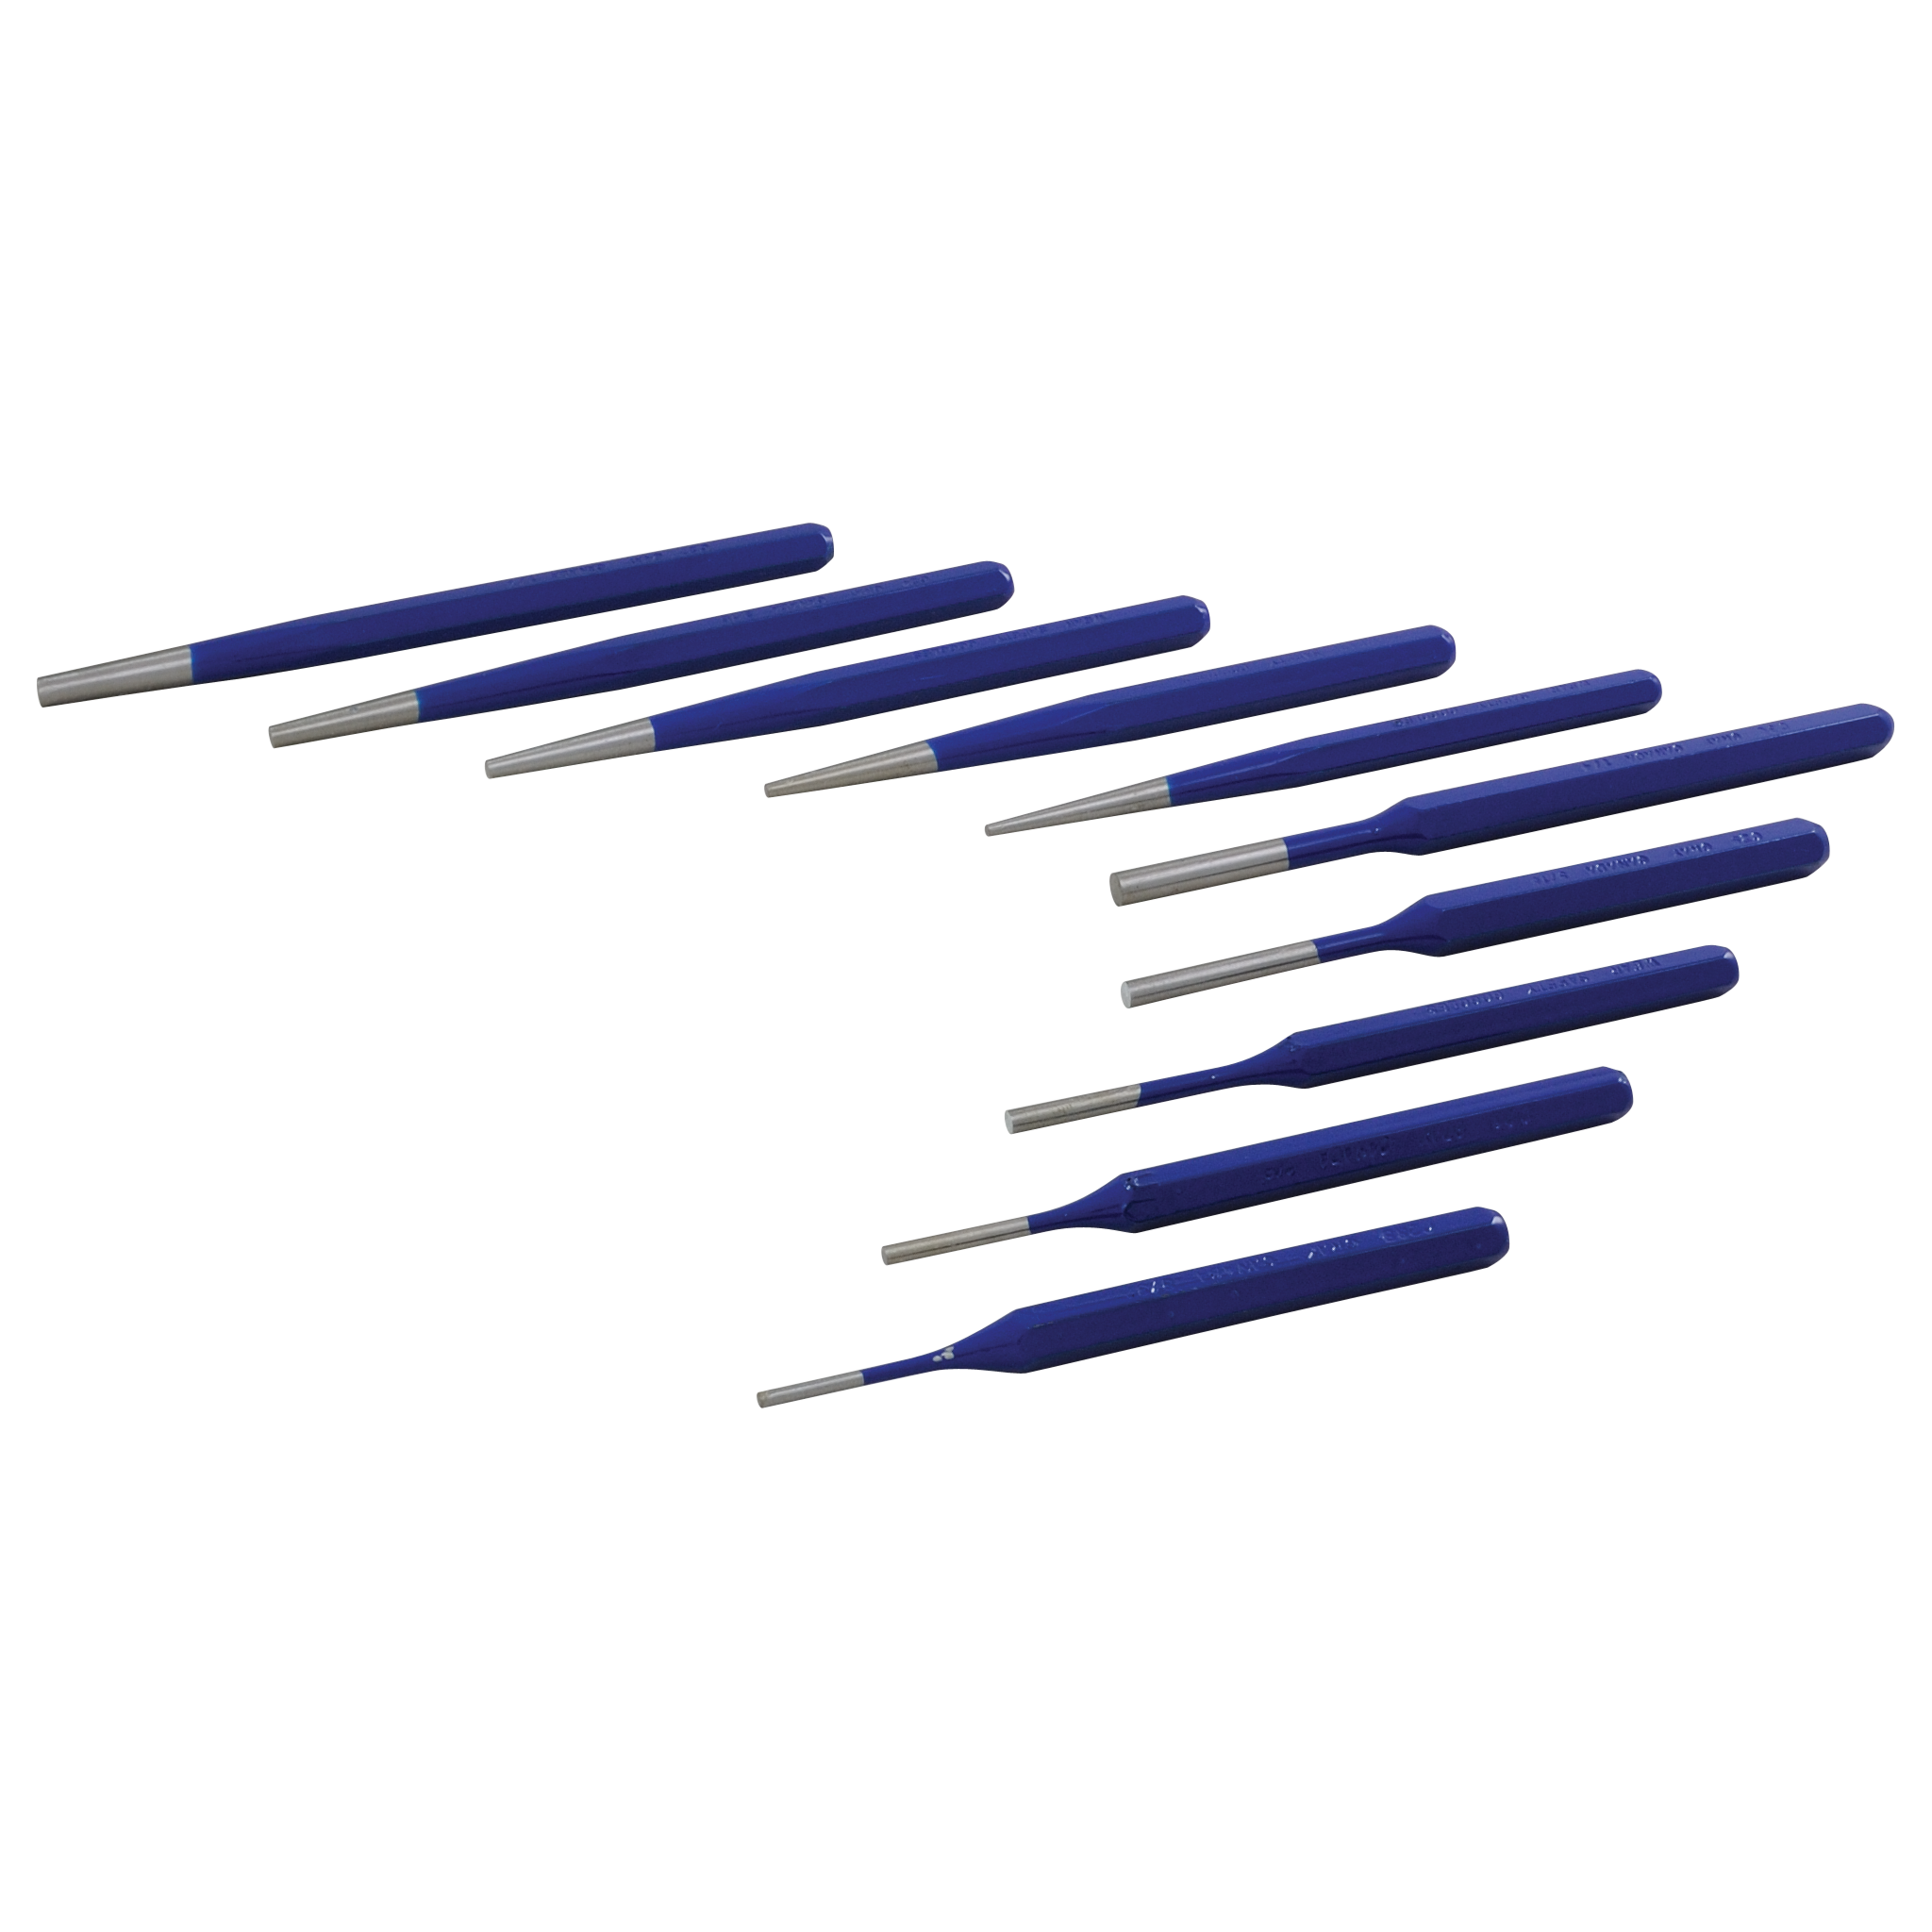 10 Piece Pin/Taper Punch Set